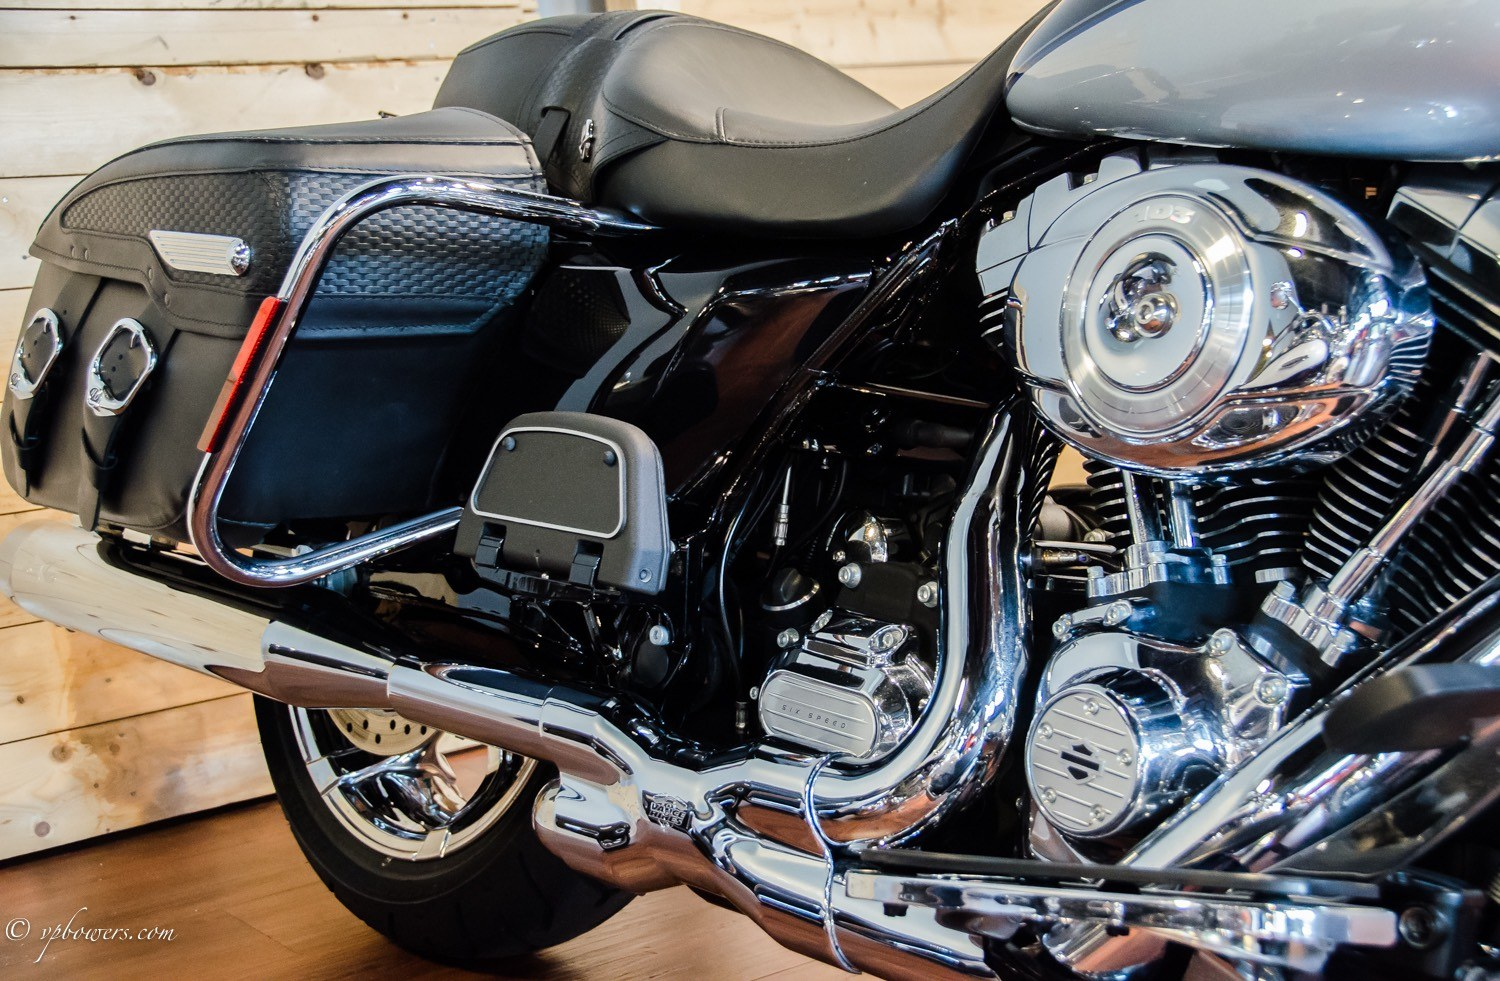 2012 Harley-Davidson Road King Classic in Mobile, Alabama - Photo 3